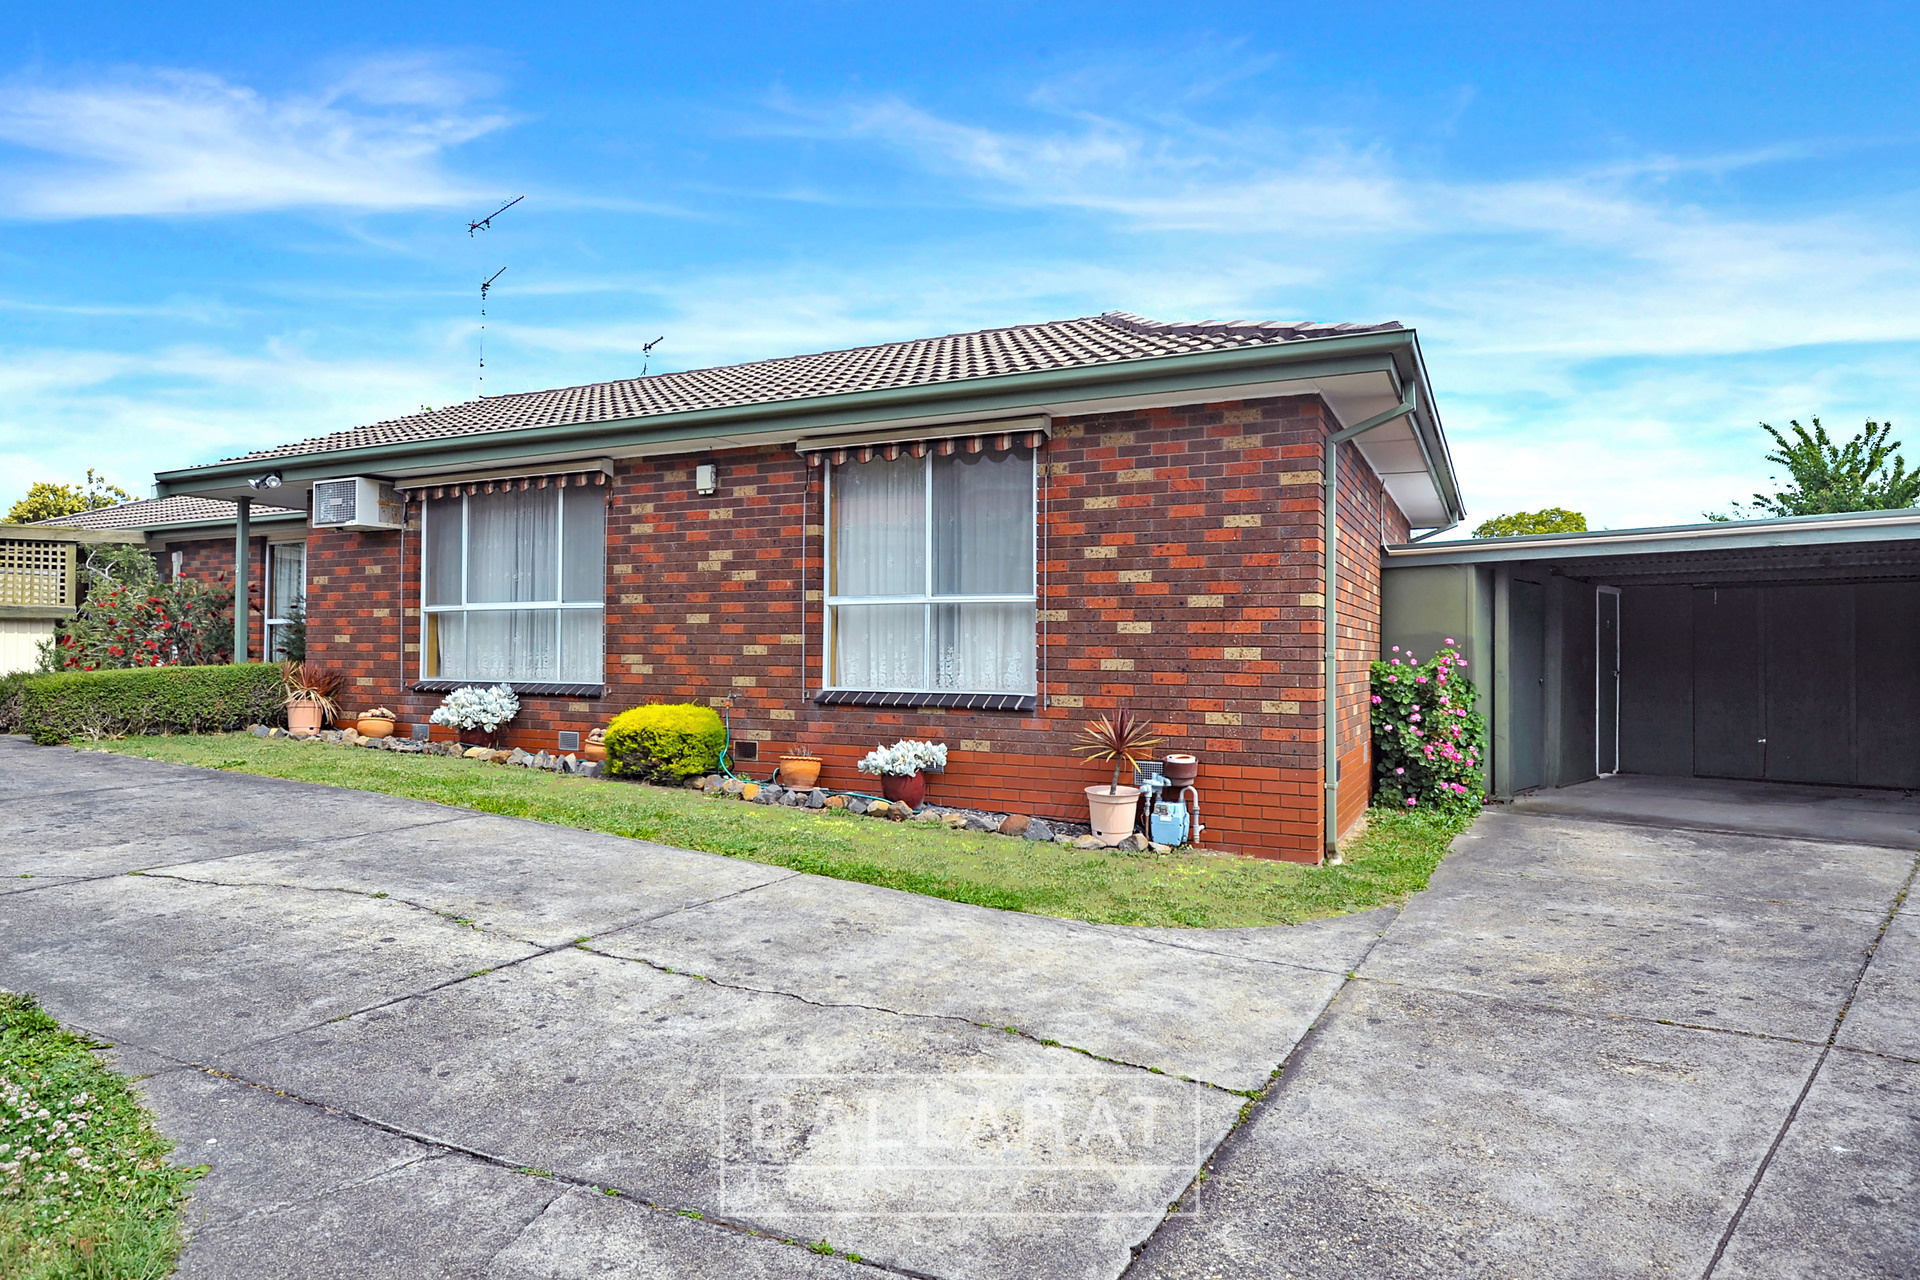 2/513 Ligar Street Soldiers Hill